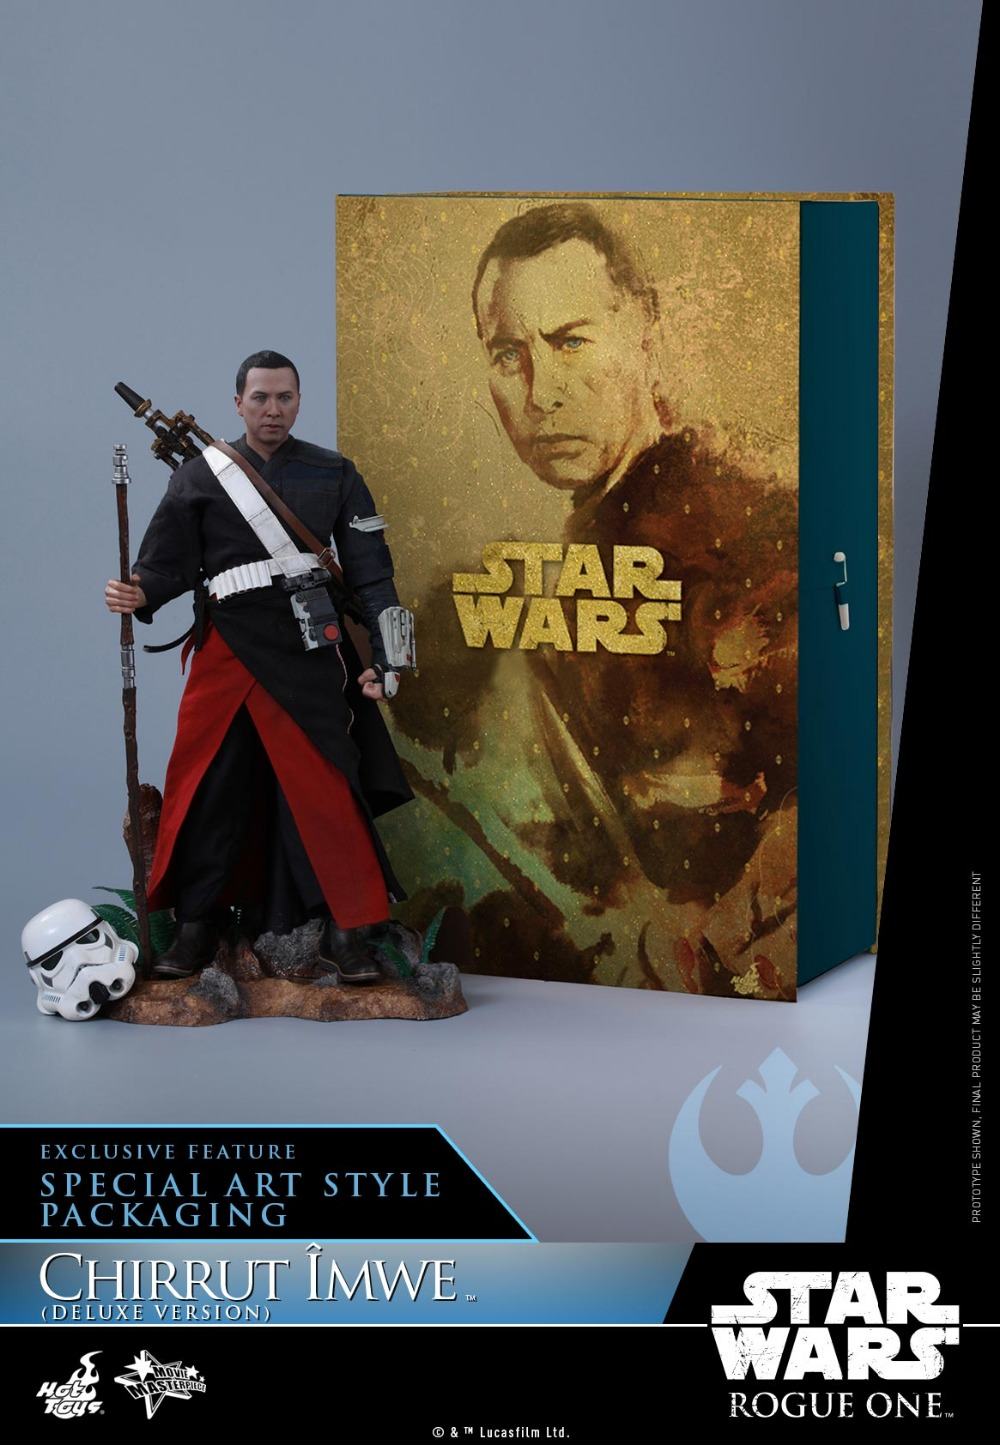 Hot Toys Rogue One: A Star Wars Story 1/6 scale Chirrut Imwe Donnie Yen Collectible Figures Set image